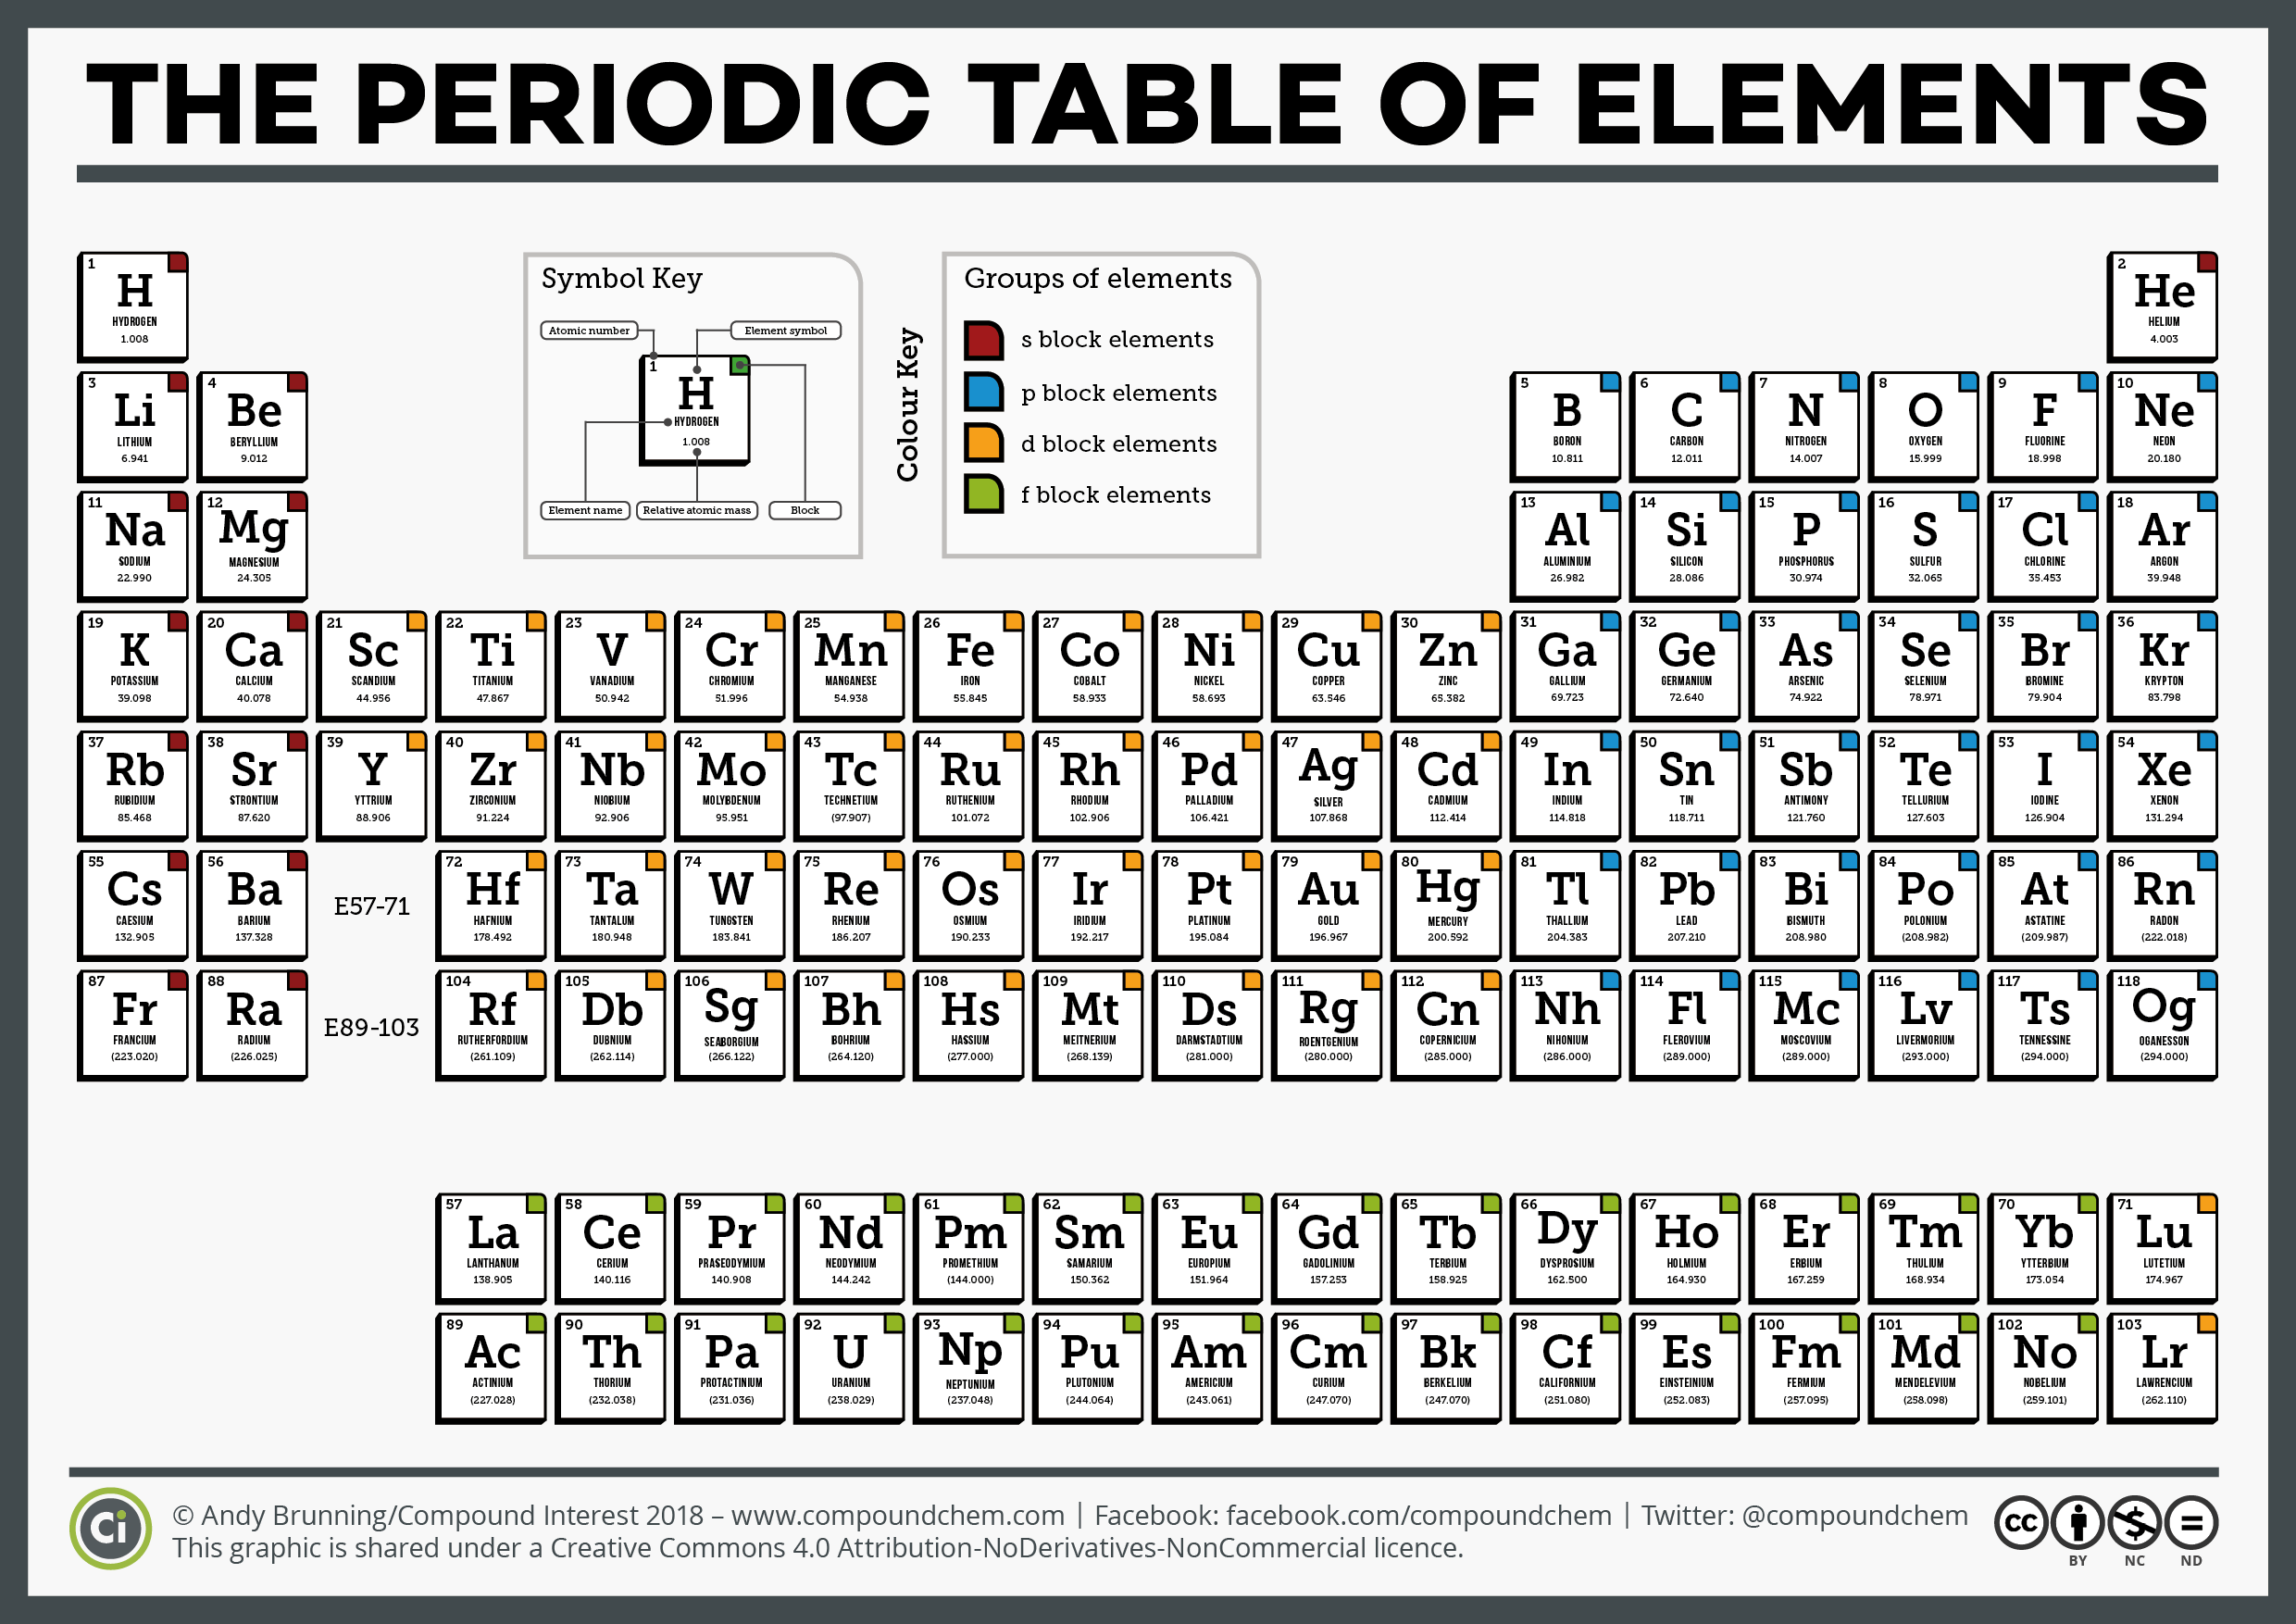 ci simple periodic table of the elements 2018 - Periodic Table Of Elements Years